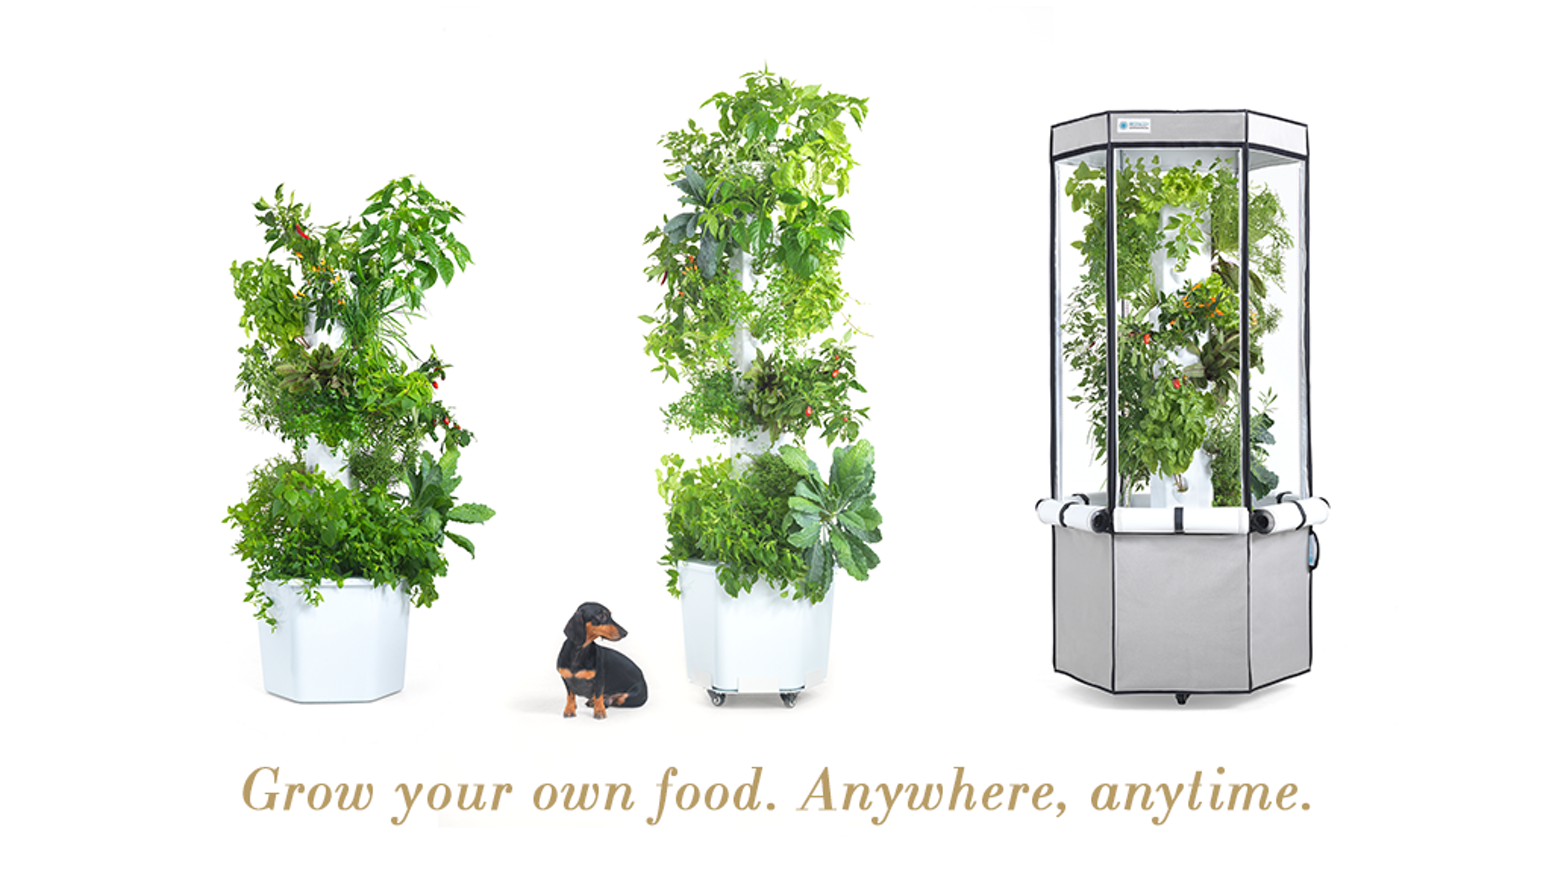 Grow anything all year round with your own urban farm right in your apartment, balcony, rooftop terrace or backyard!